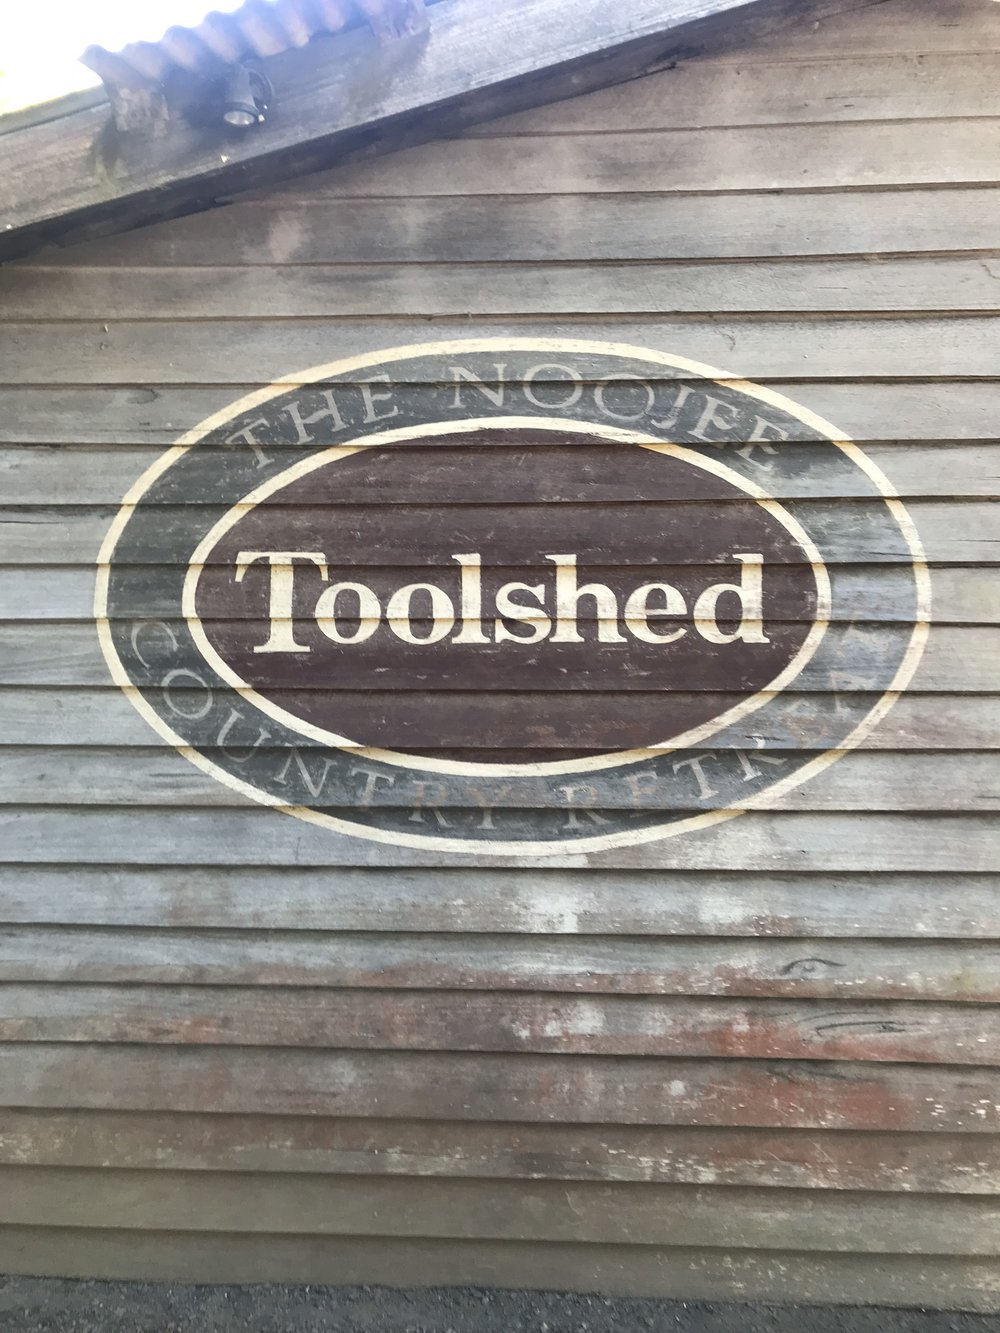 Good eating at The Noojee Toolshed